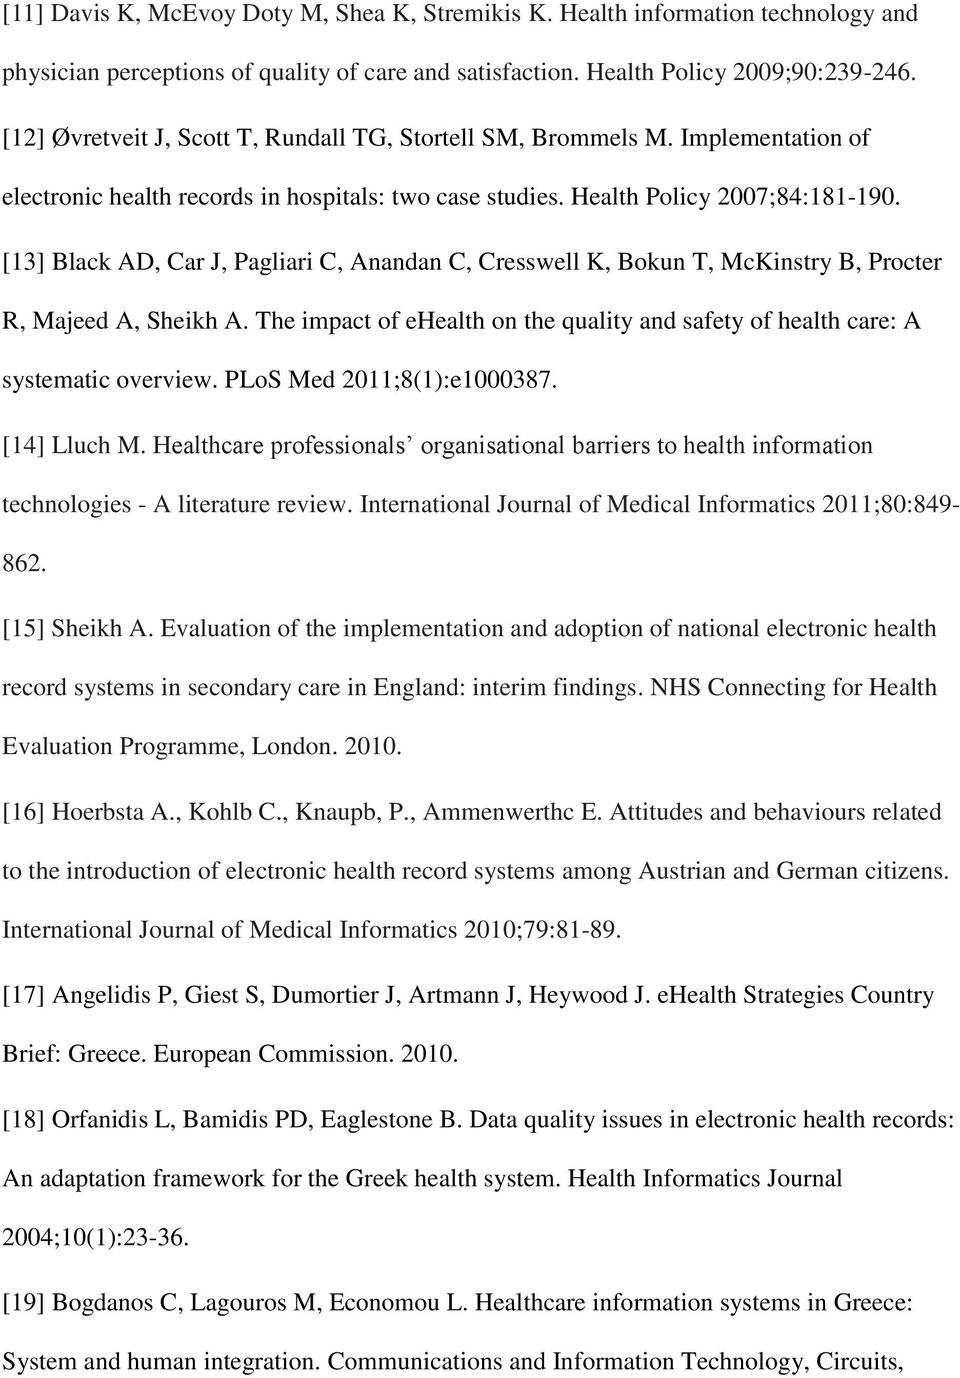 [13] Black AD, Car J, Pagliari C, Anandan C, Cresswell K, Bokun T, McKinstry B, Procter R, Majeed A, Sheikh A. The impact of ehealth on the quality and safety of health care: A systematic overview.